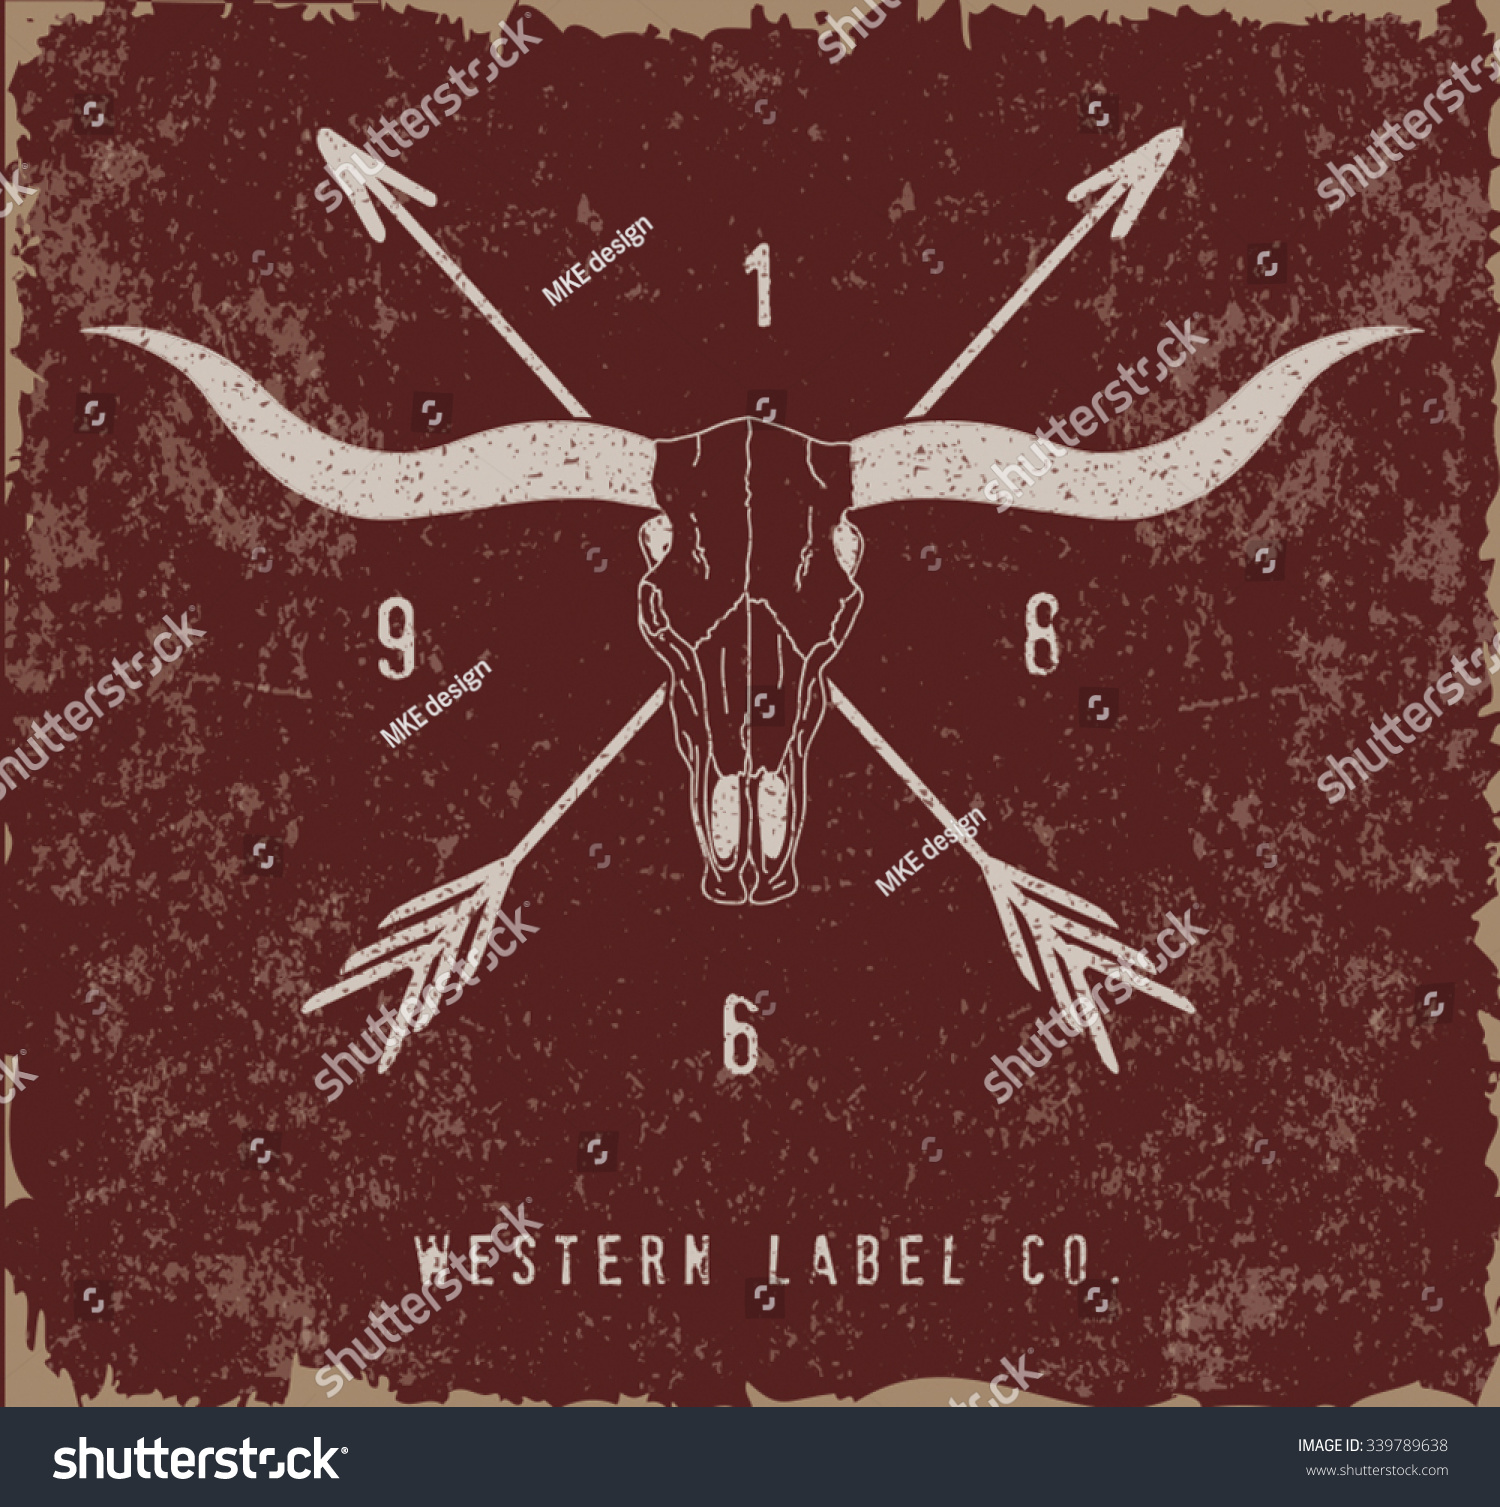 Western Label Design Old Effect Stock Vector 339789638 - Shutterstock